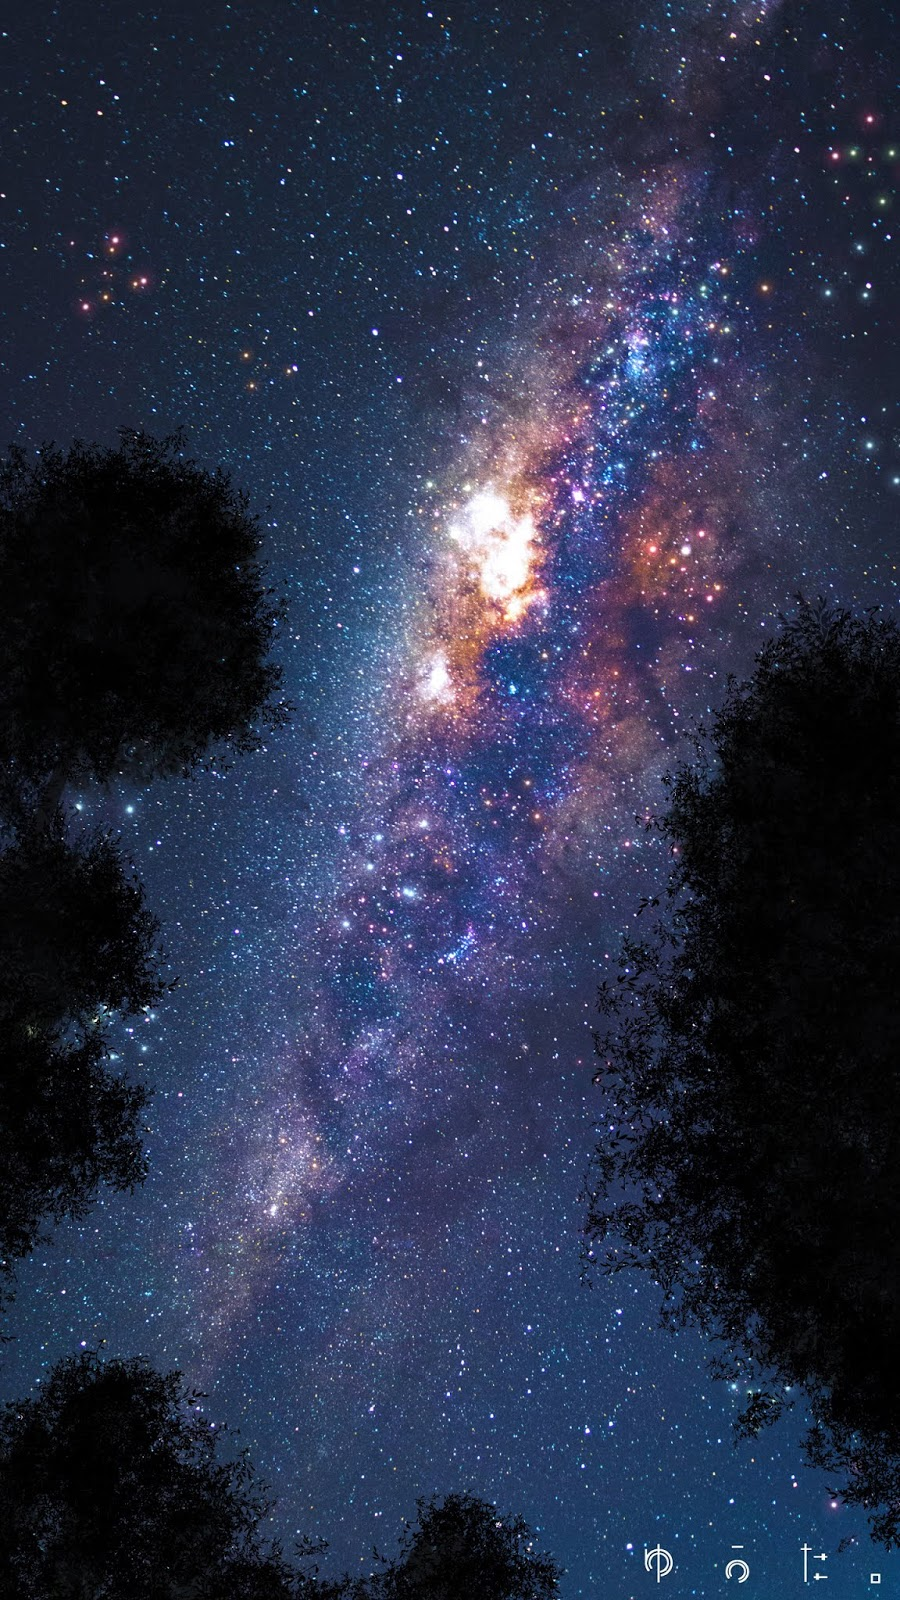 Milky way in the night